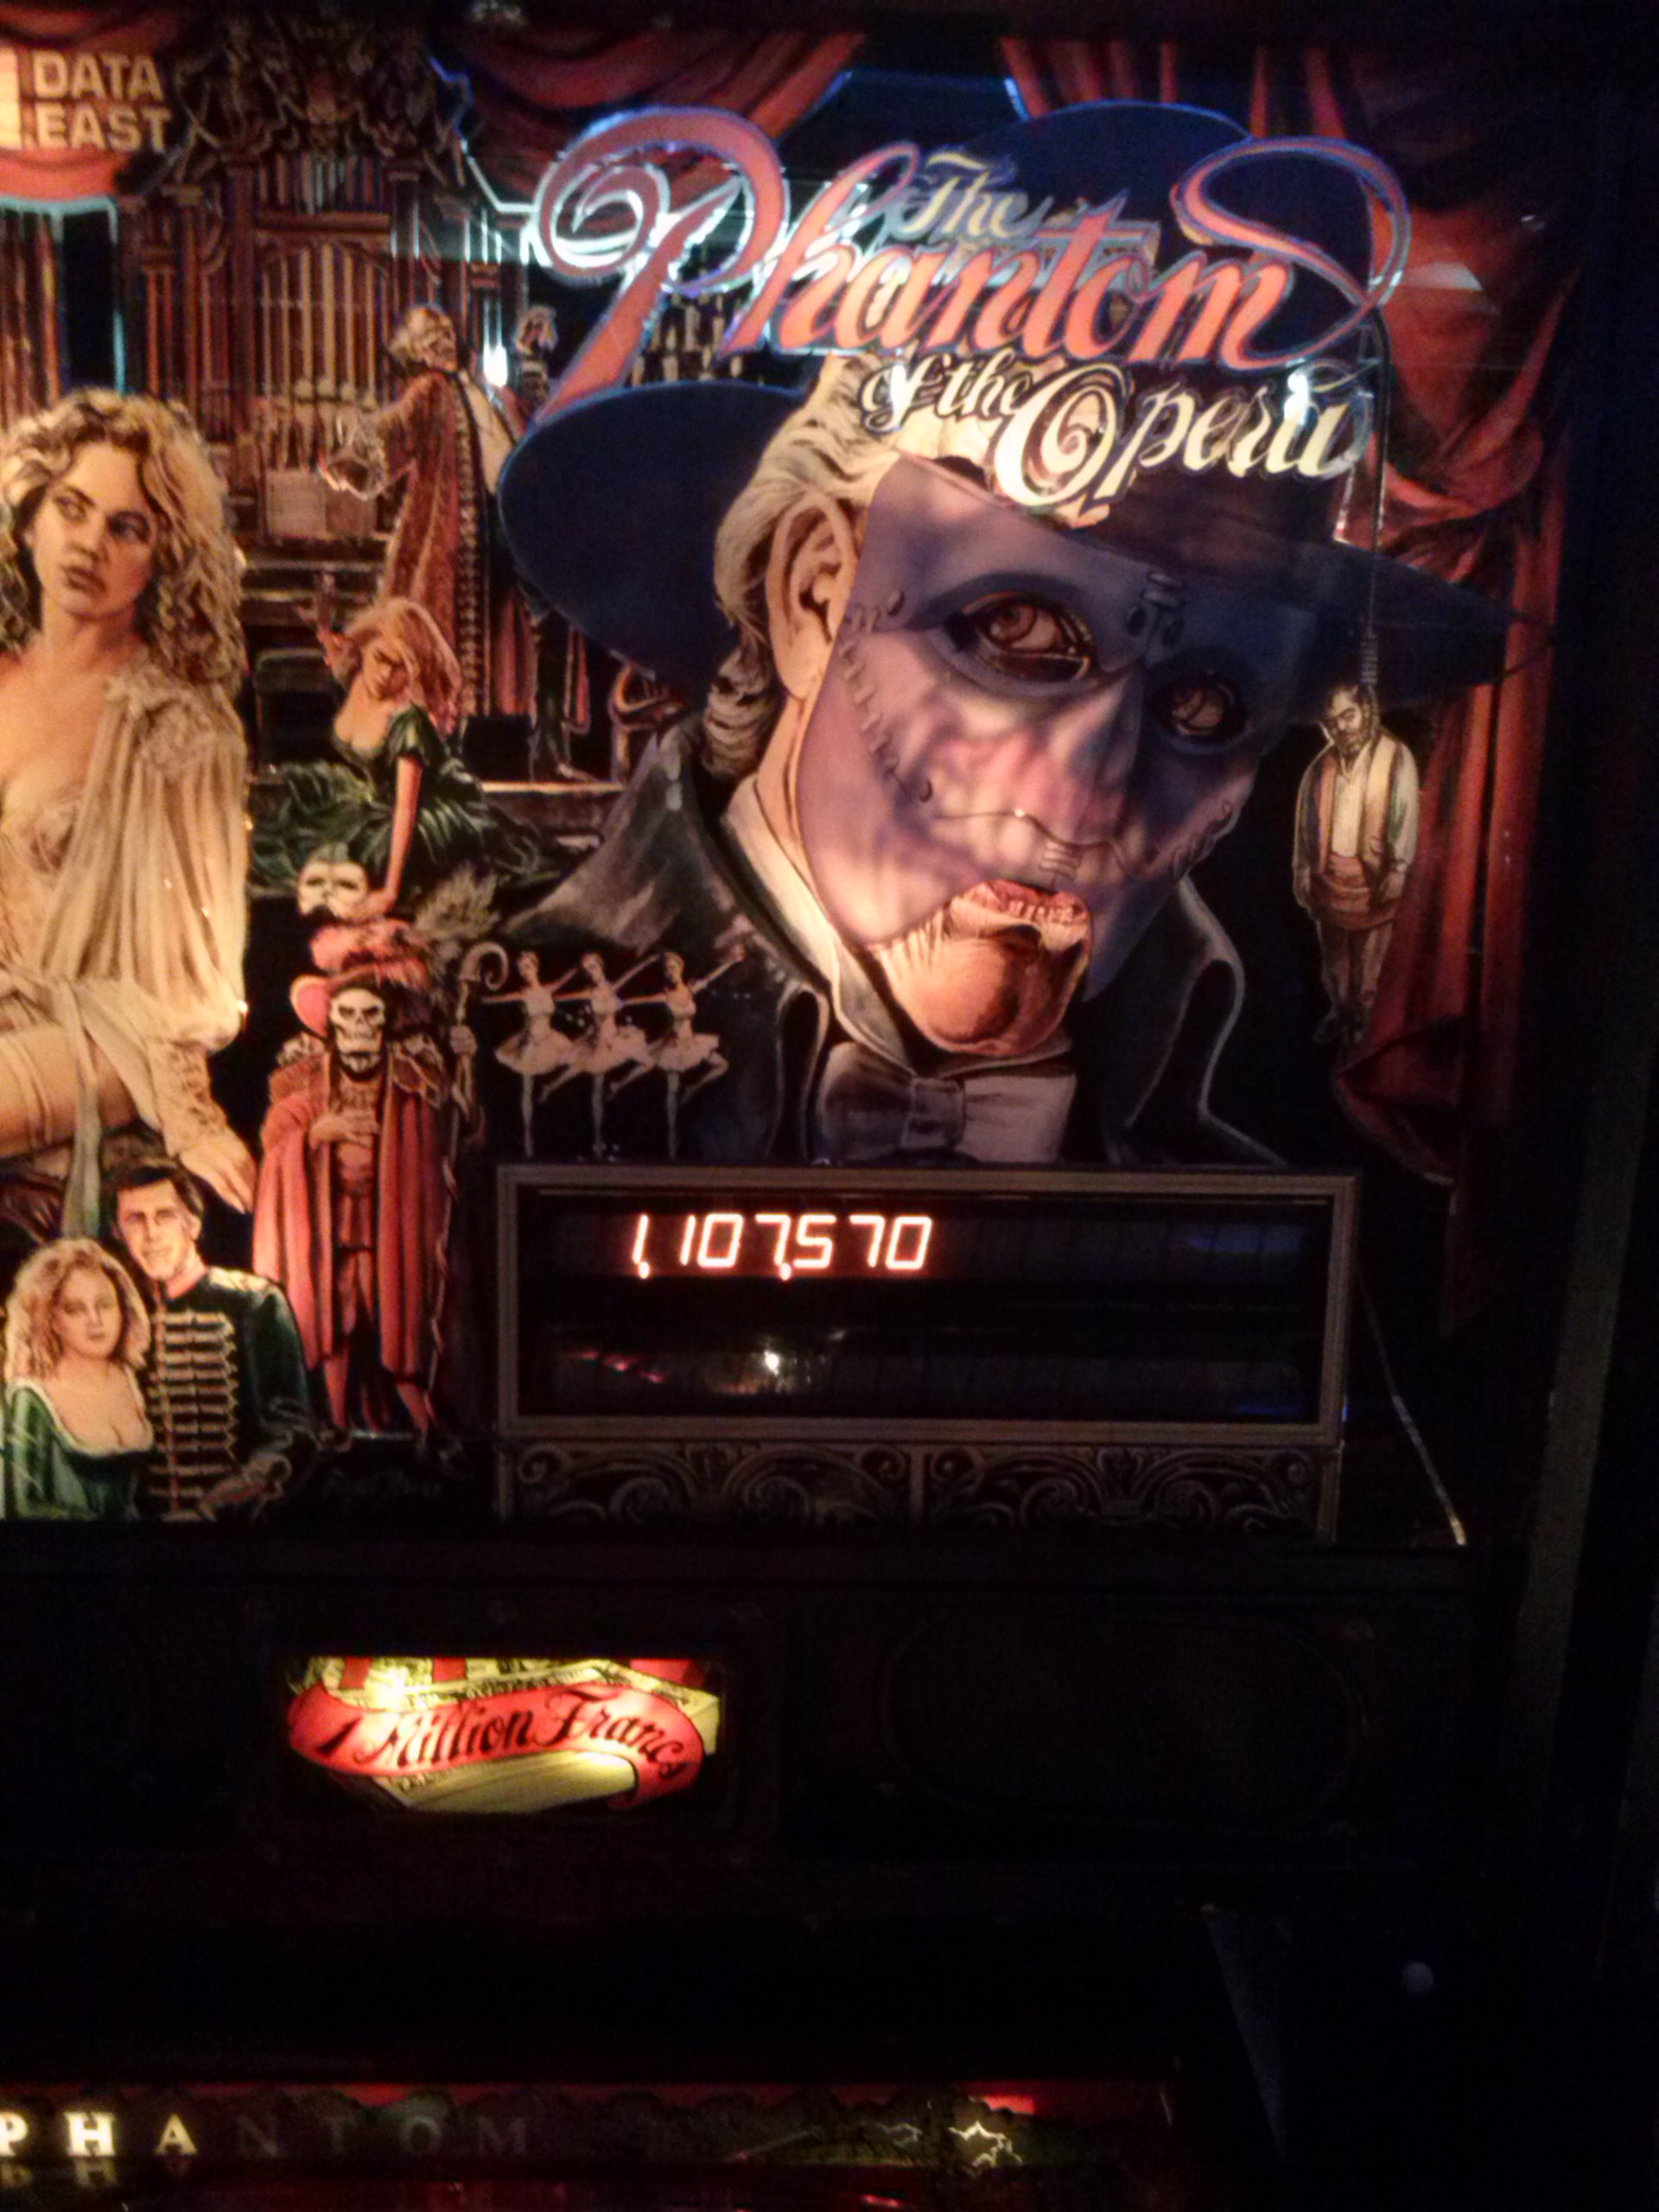 nester: The Phantom of the Opera (Pinball: 3 Balls) 1,107,570 points on 2014-05-25 01:07:26